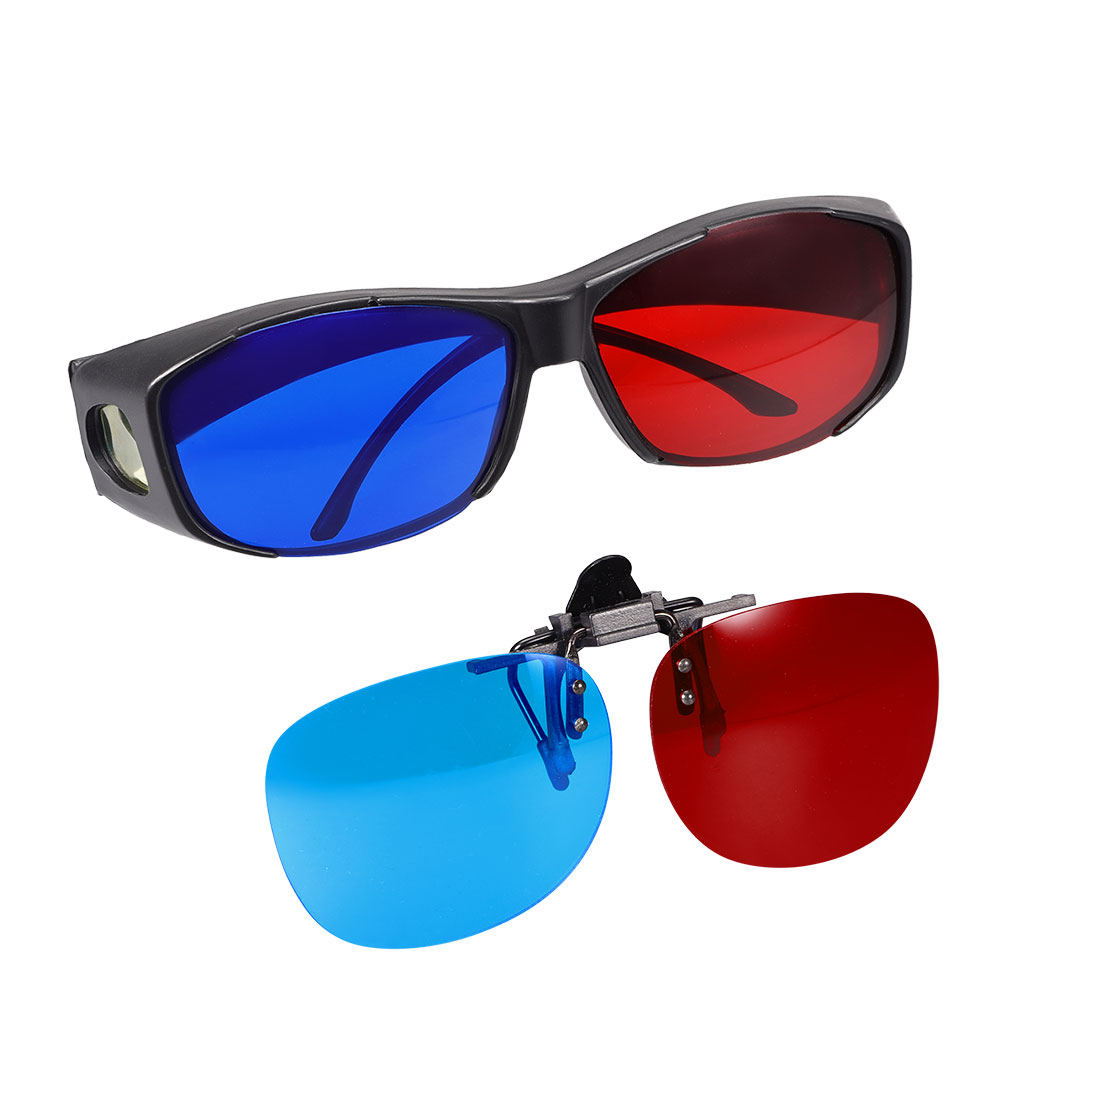 Red-Blue 3D Glasses and 3D Clip-on Glasses for Movies Anaglyph Photos 1set